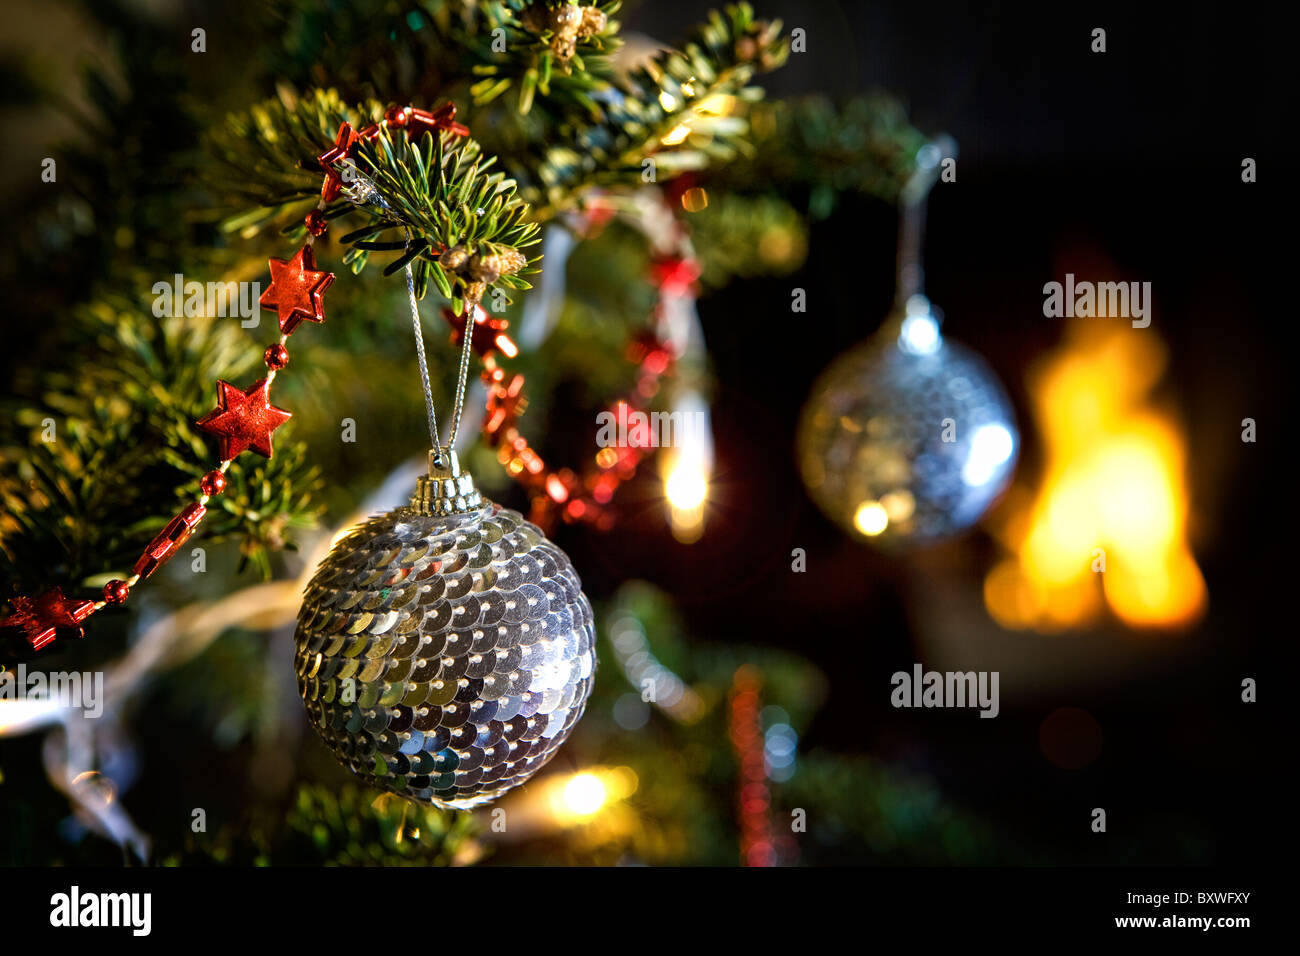 Disco mirror ball decorations hanging from a Christmas tree in front of a fire on Christmas eve - Stock Image